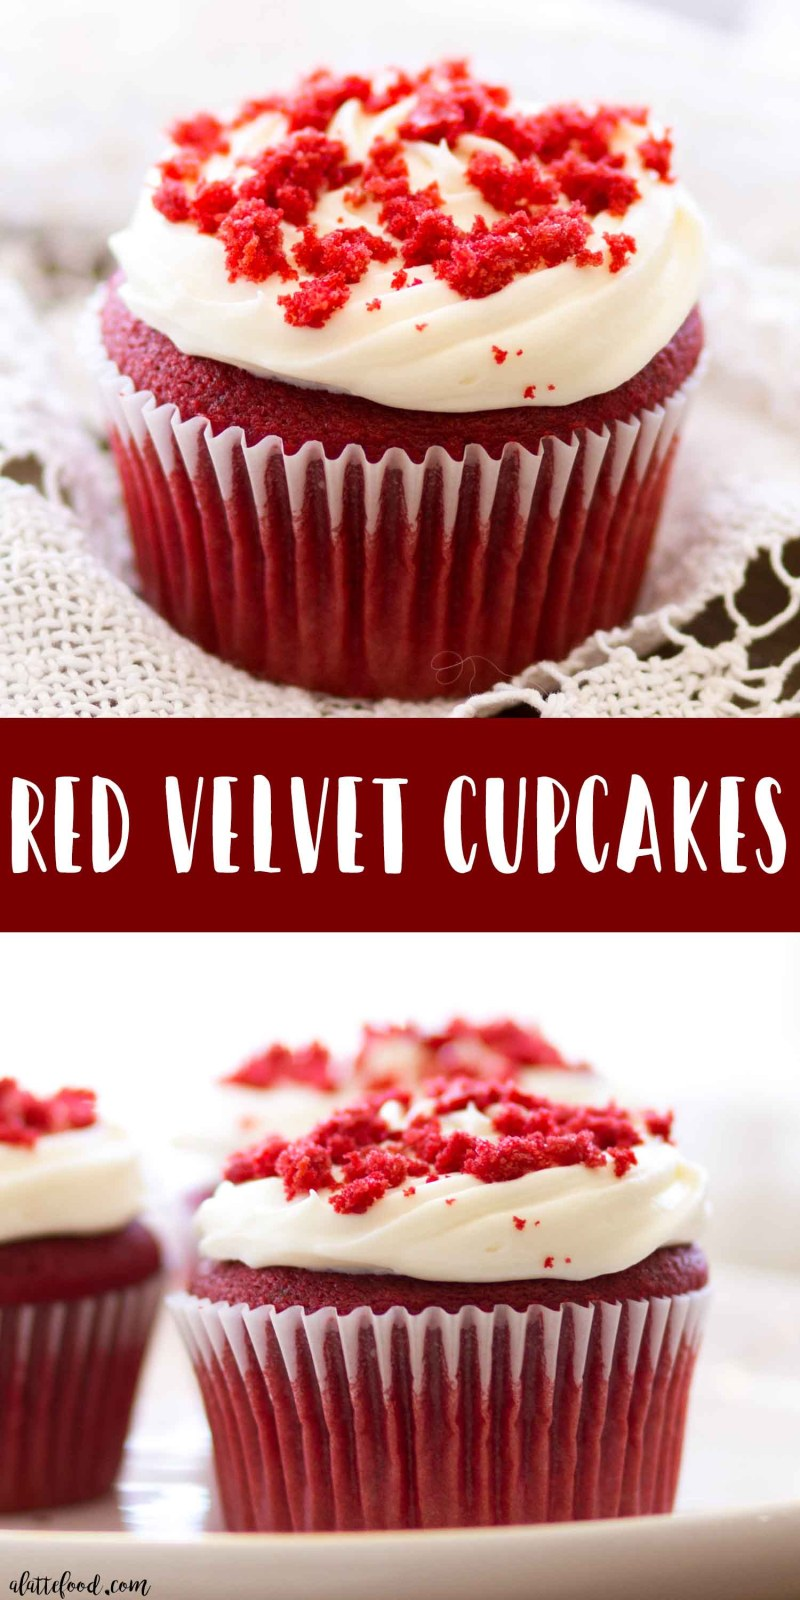 These homemade red velvet cupcakes are light, fluffy, and incredibly simple to make! The subtle cocoa flavor in these easy red velvet cupcakes pairs perfectly with the rich cream cheese frosting!